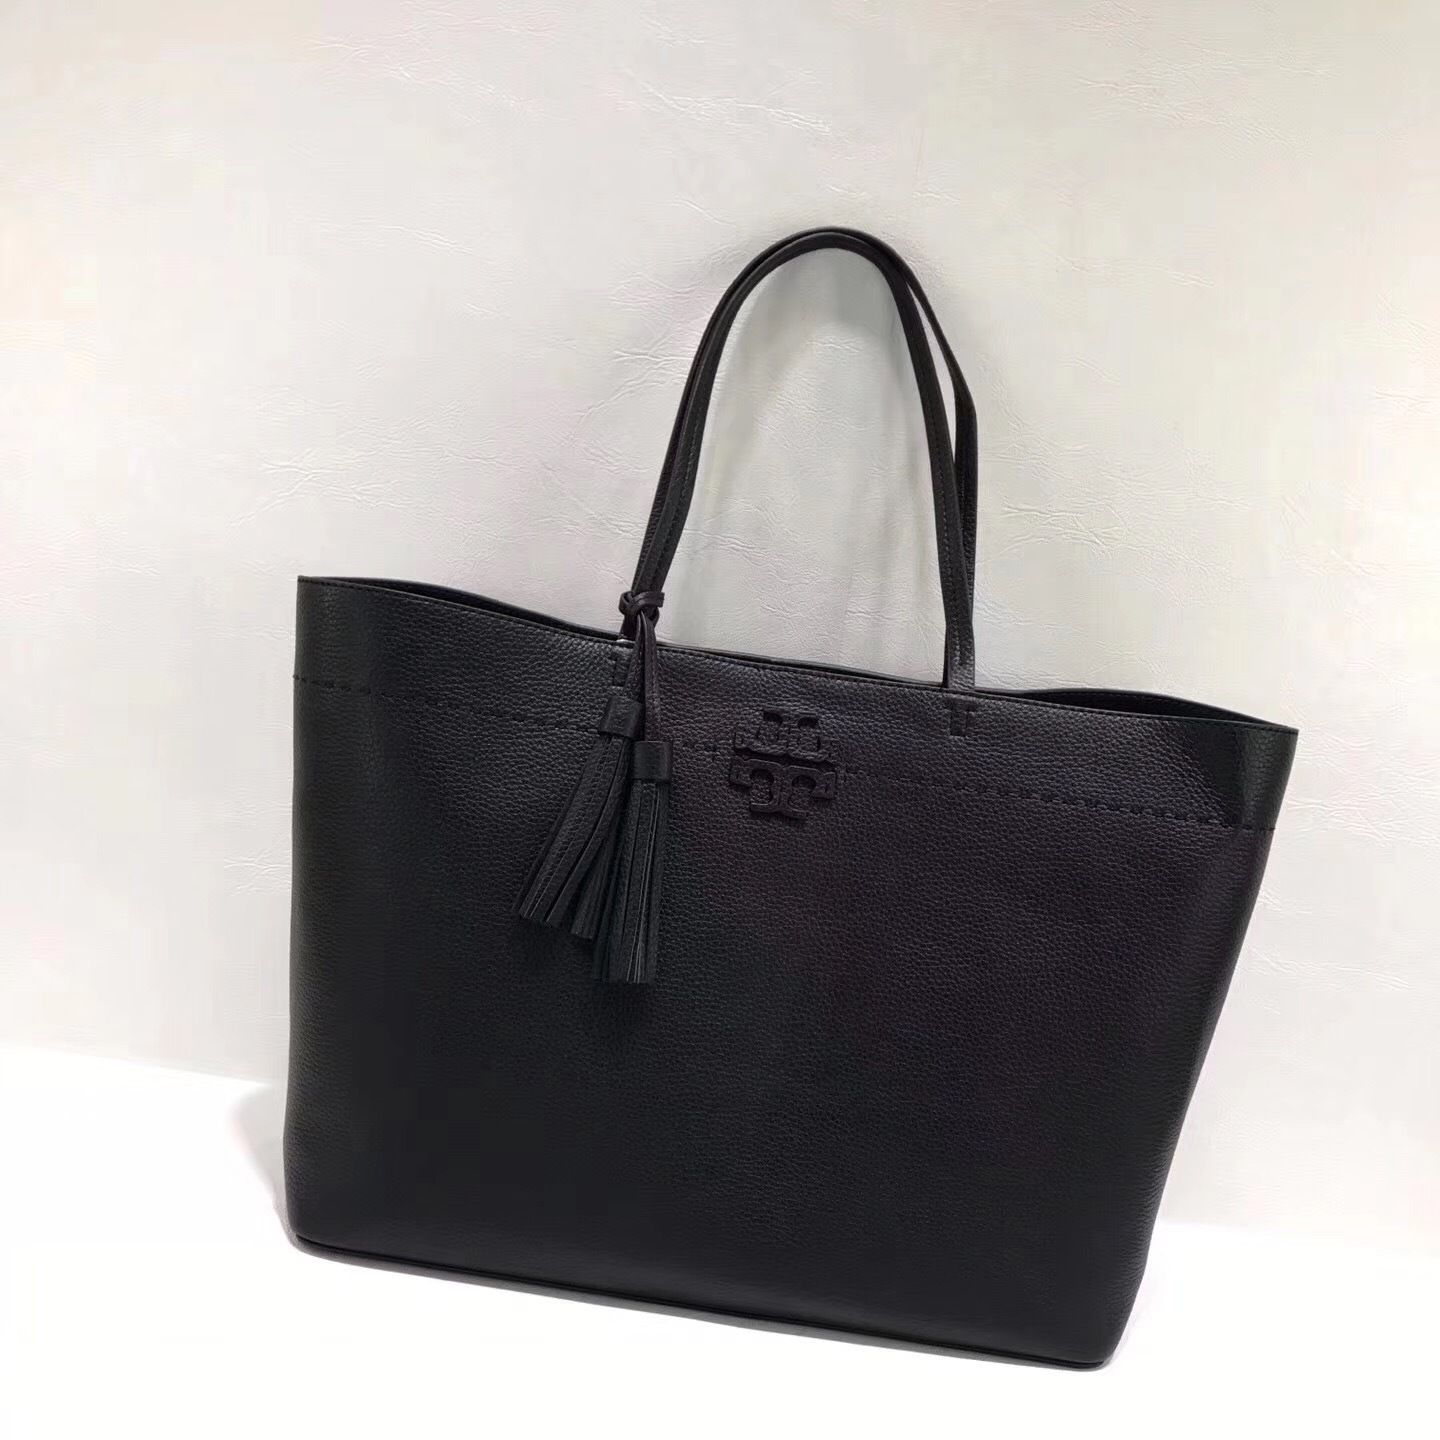 d84da3899aff NWT Tory Burch Mcgraw Tote and 50 similar items. Img 0696